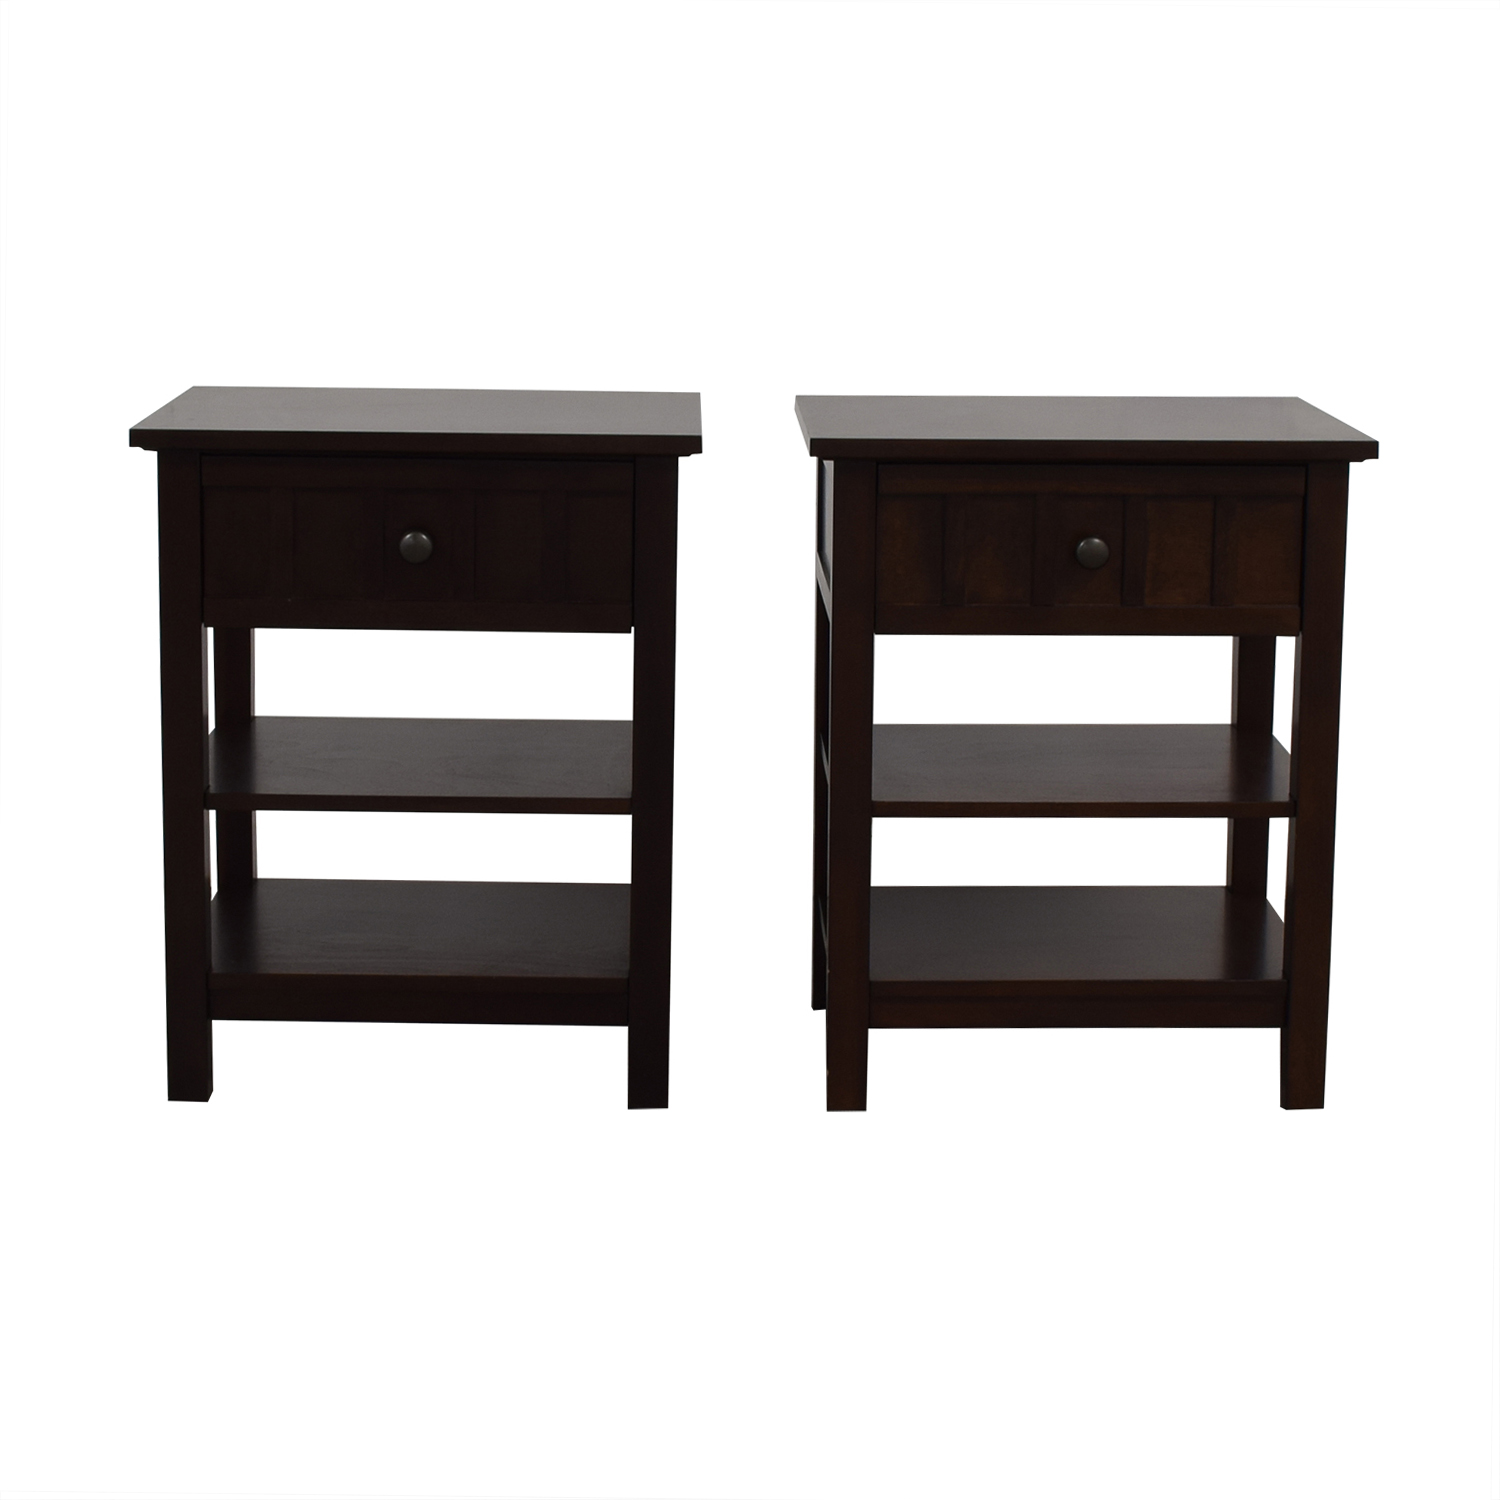 Crate & Barrel Crate & Barrel Nightstands for sale